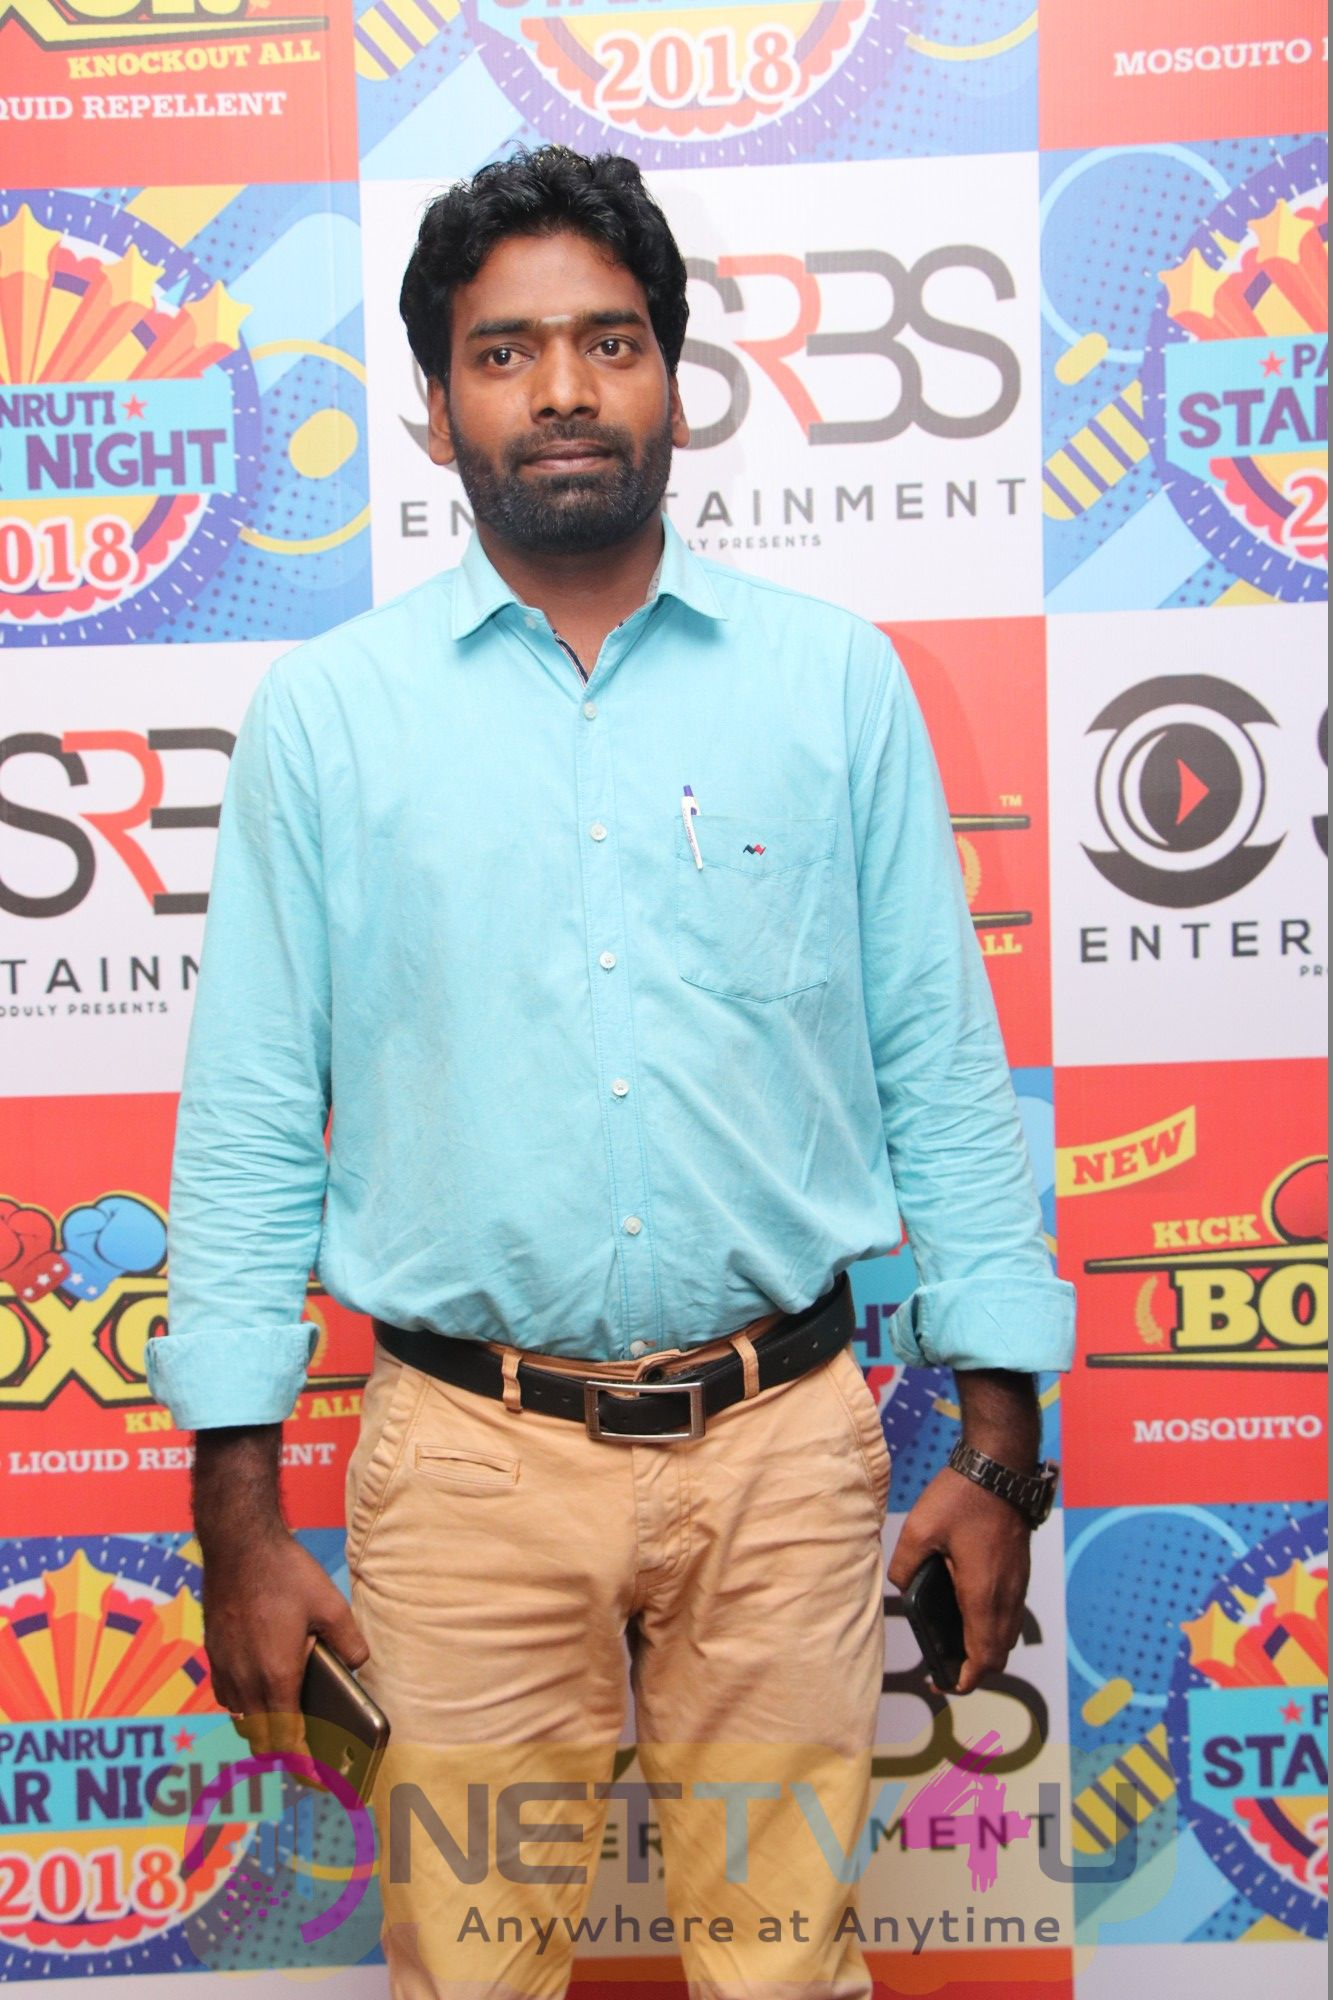 Panruti Star Night 2018 Event Images Tamil Gallery